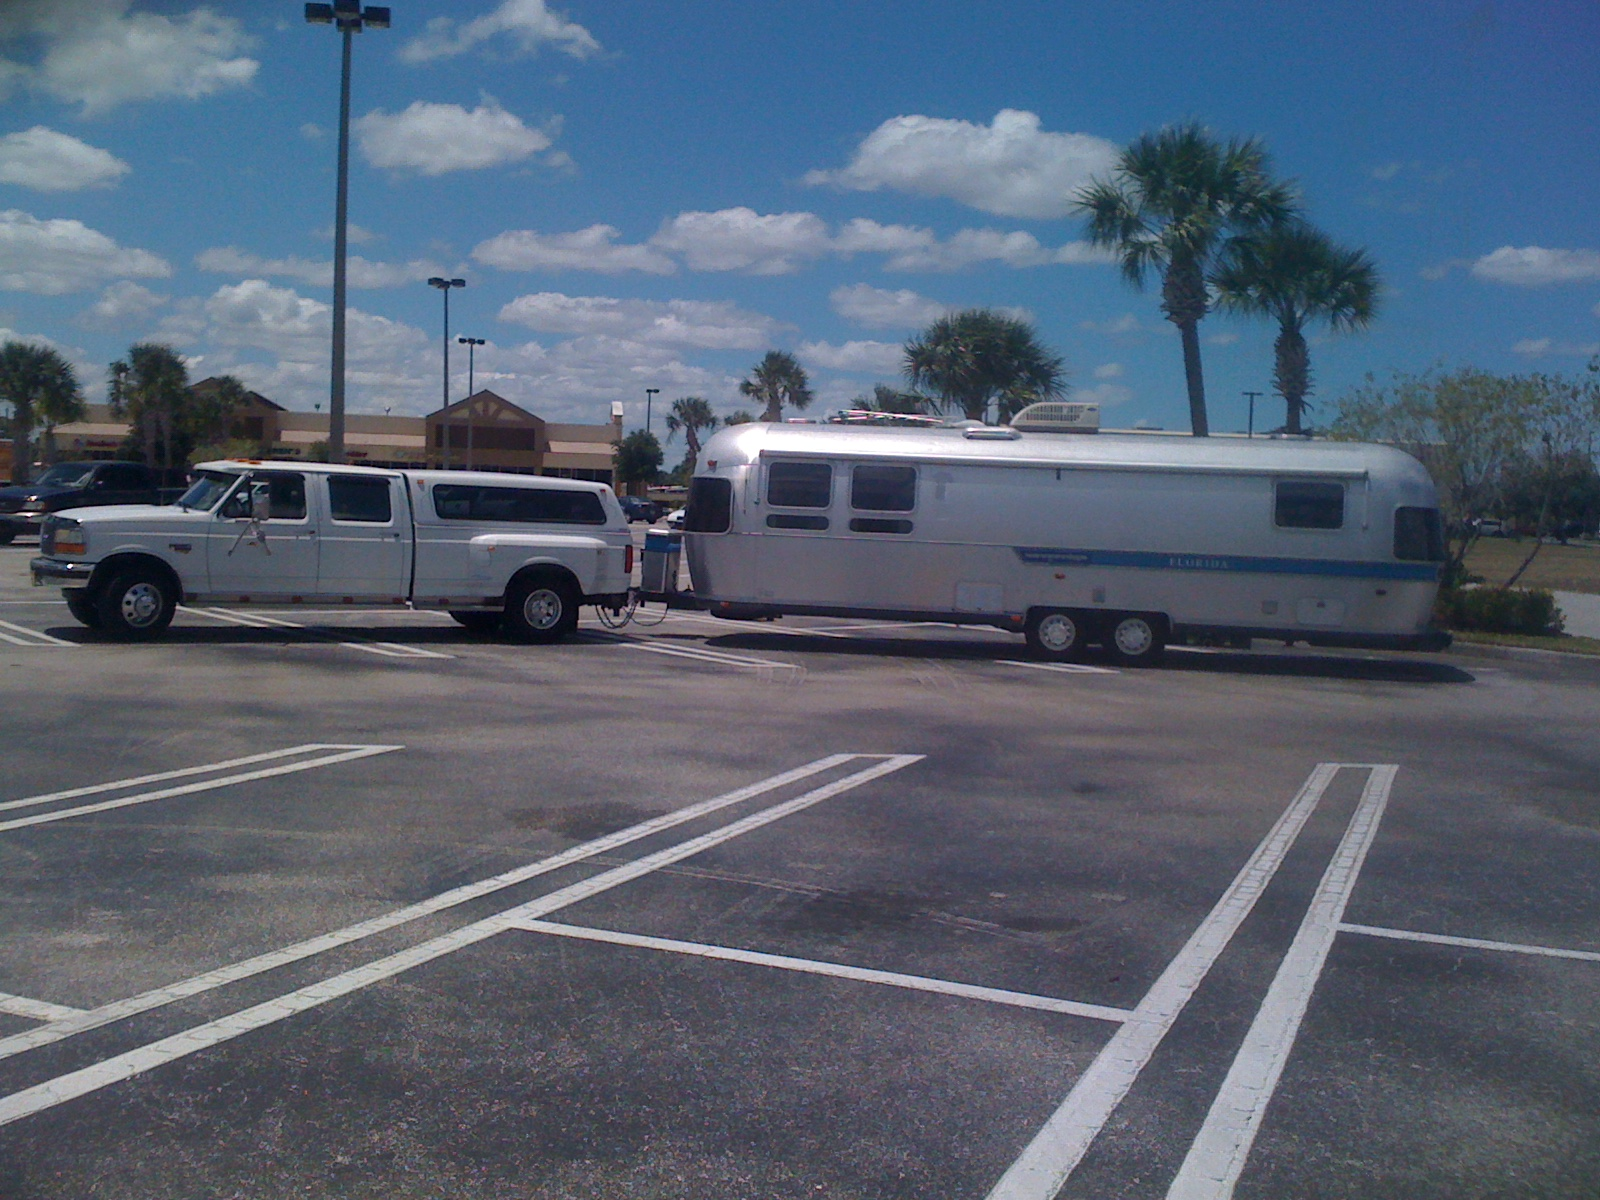 Click image for larger version  Name:Airstream 007.JPG Views:67 Size:699.8 KB ID:203527